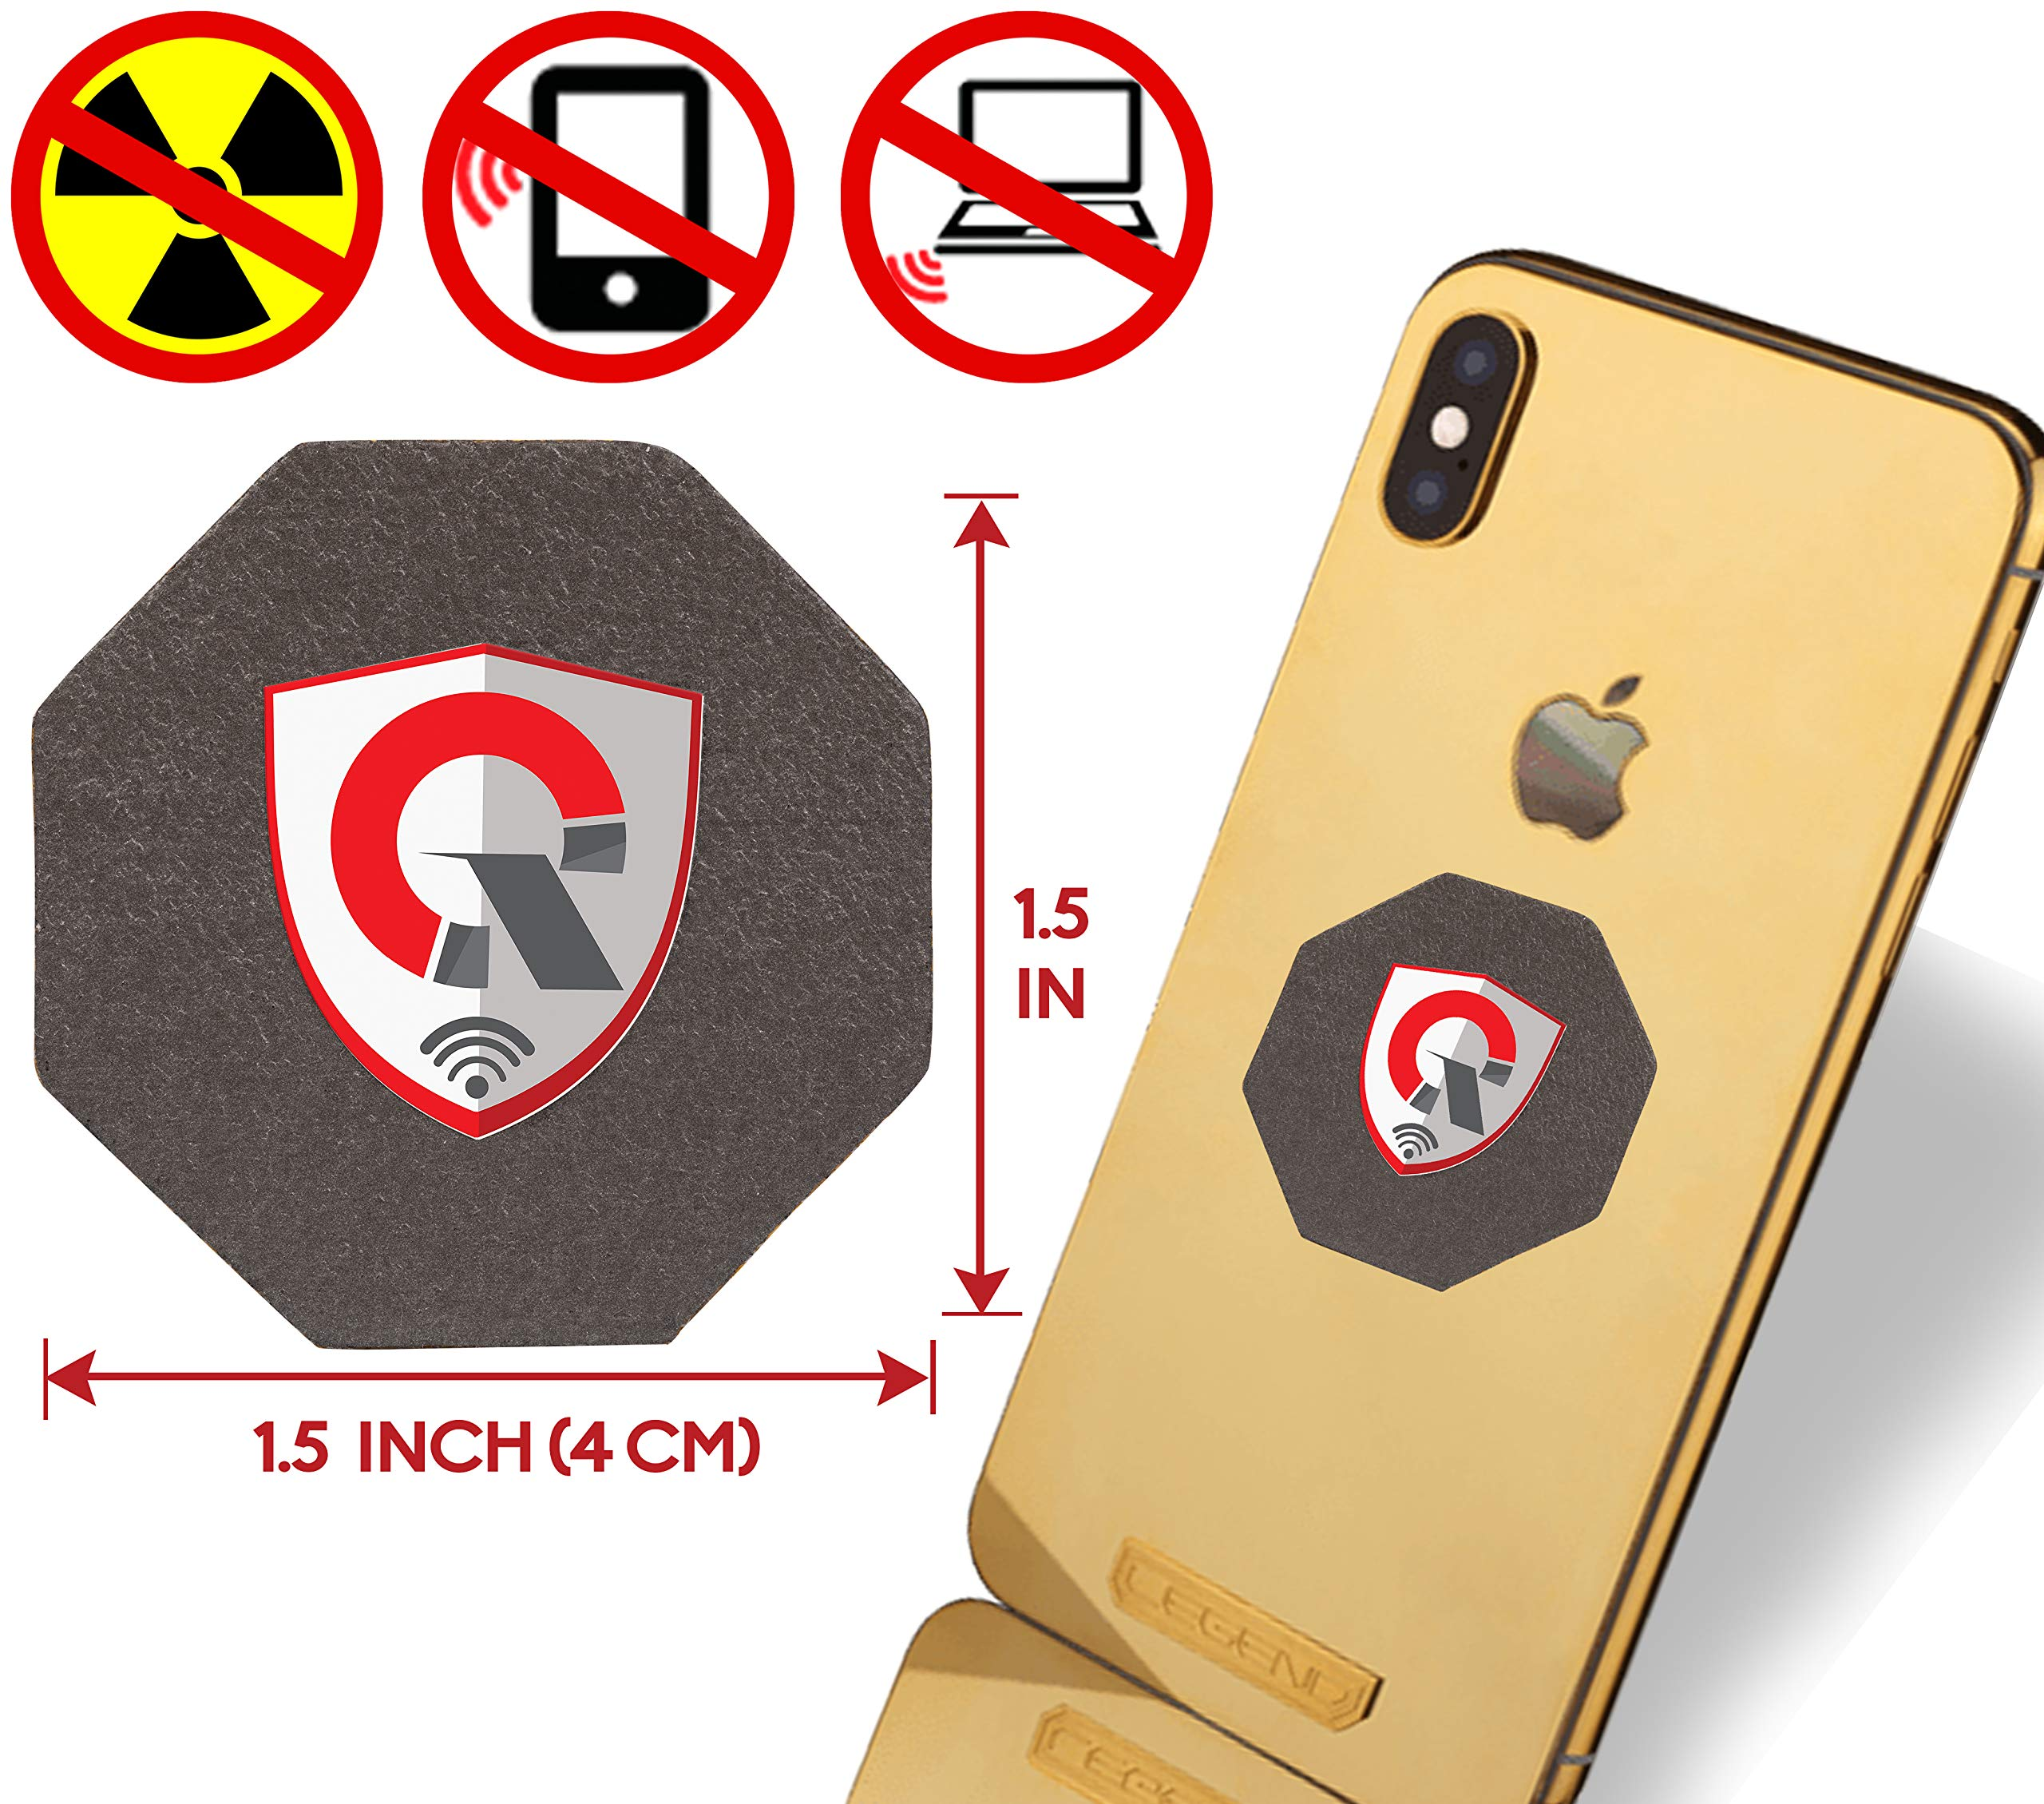 Best EMF Protection CELL PHONE : Radiation Protection Tesla Technology EMF Shield WiFi, Laptop-All Devices| Negative Ion Generator| Global AWARDS Anti Radiation Shield, EMF Blocker Neutralizer 1.5INCH by QUANTHOR